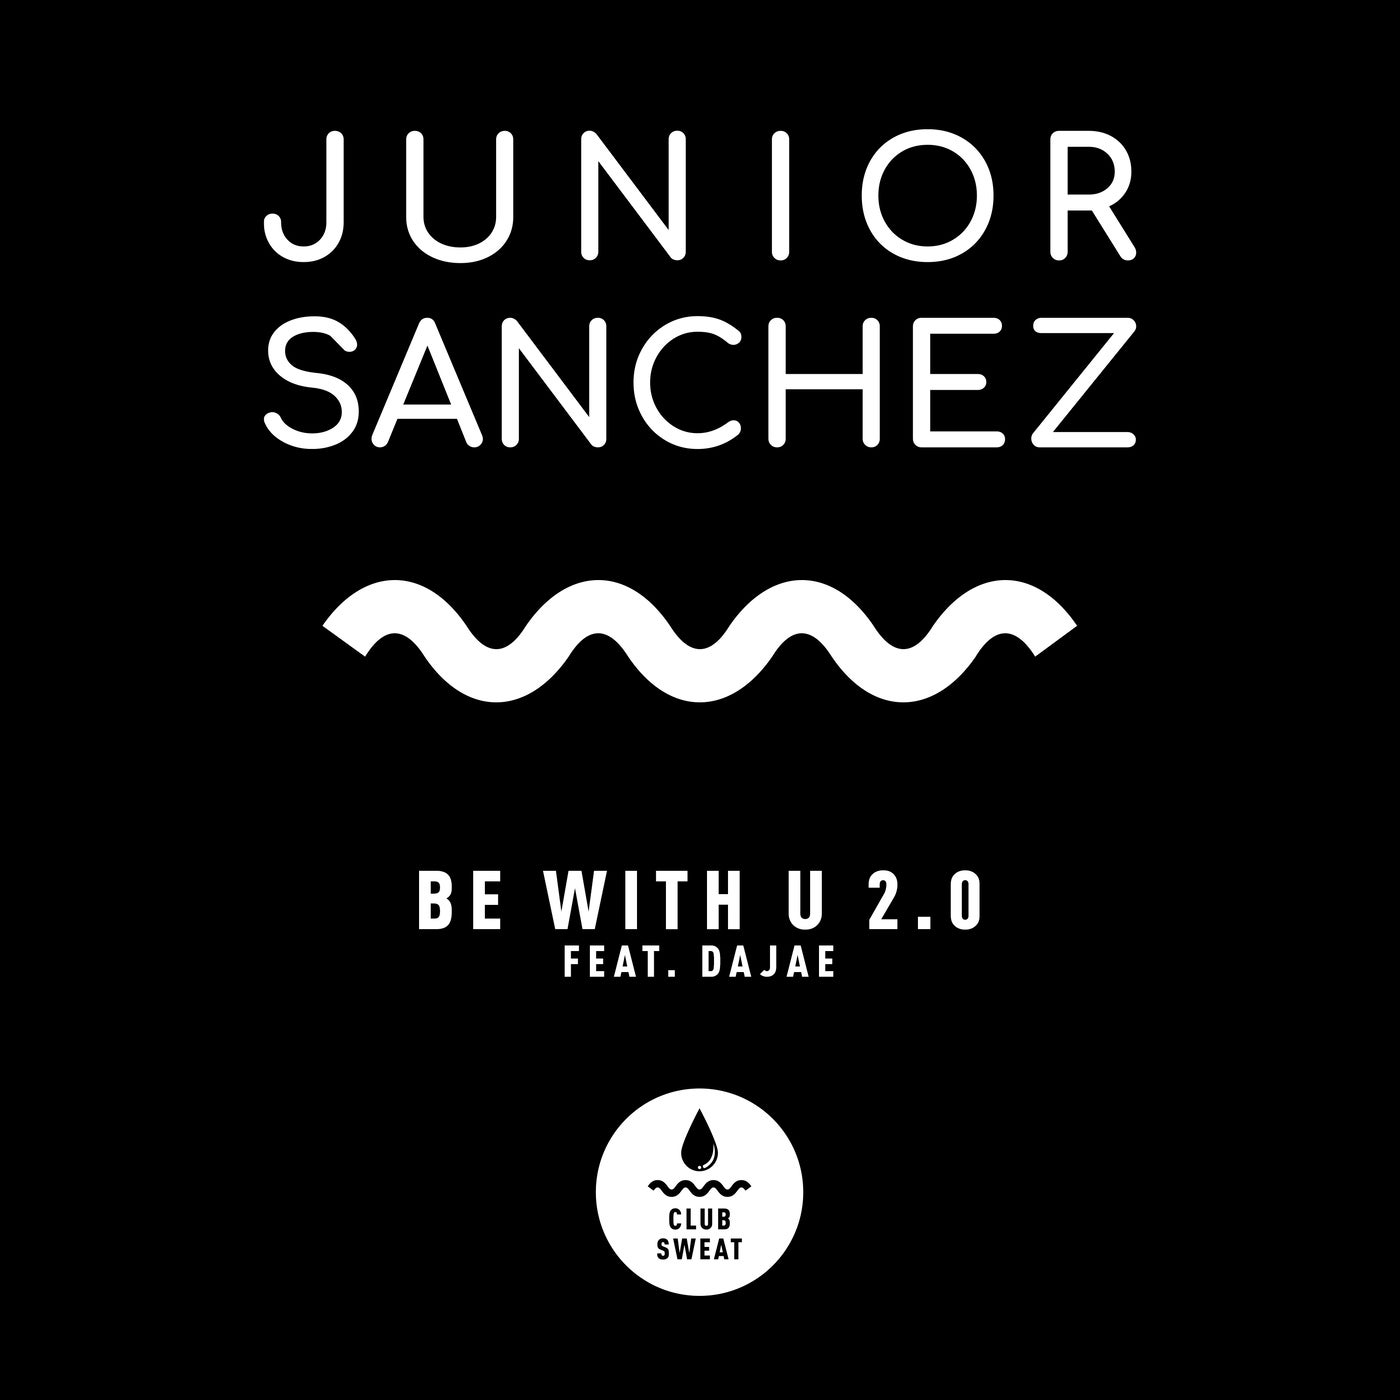 Be with U 2.0 Feat. Dajae (Extended Mix)